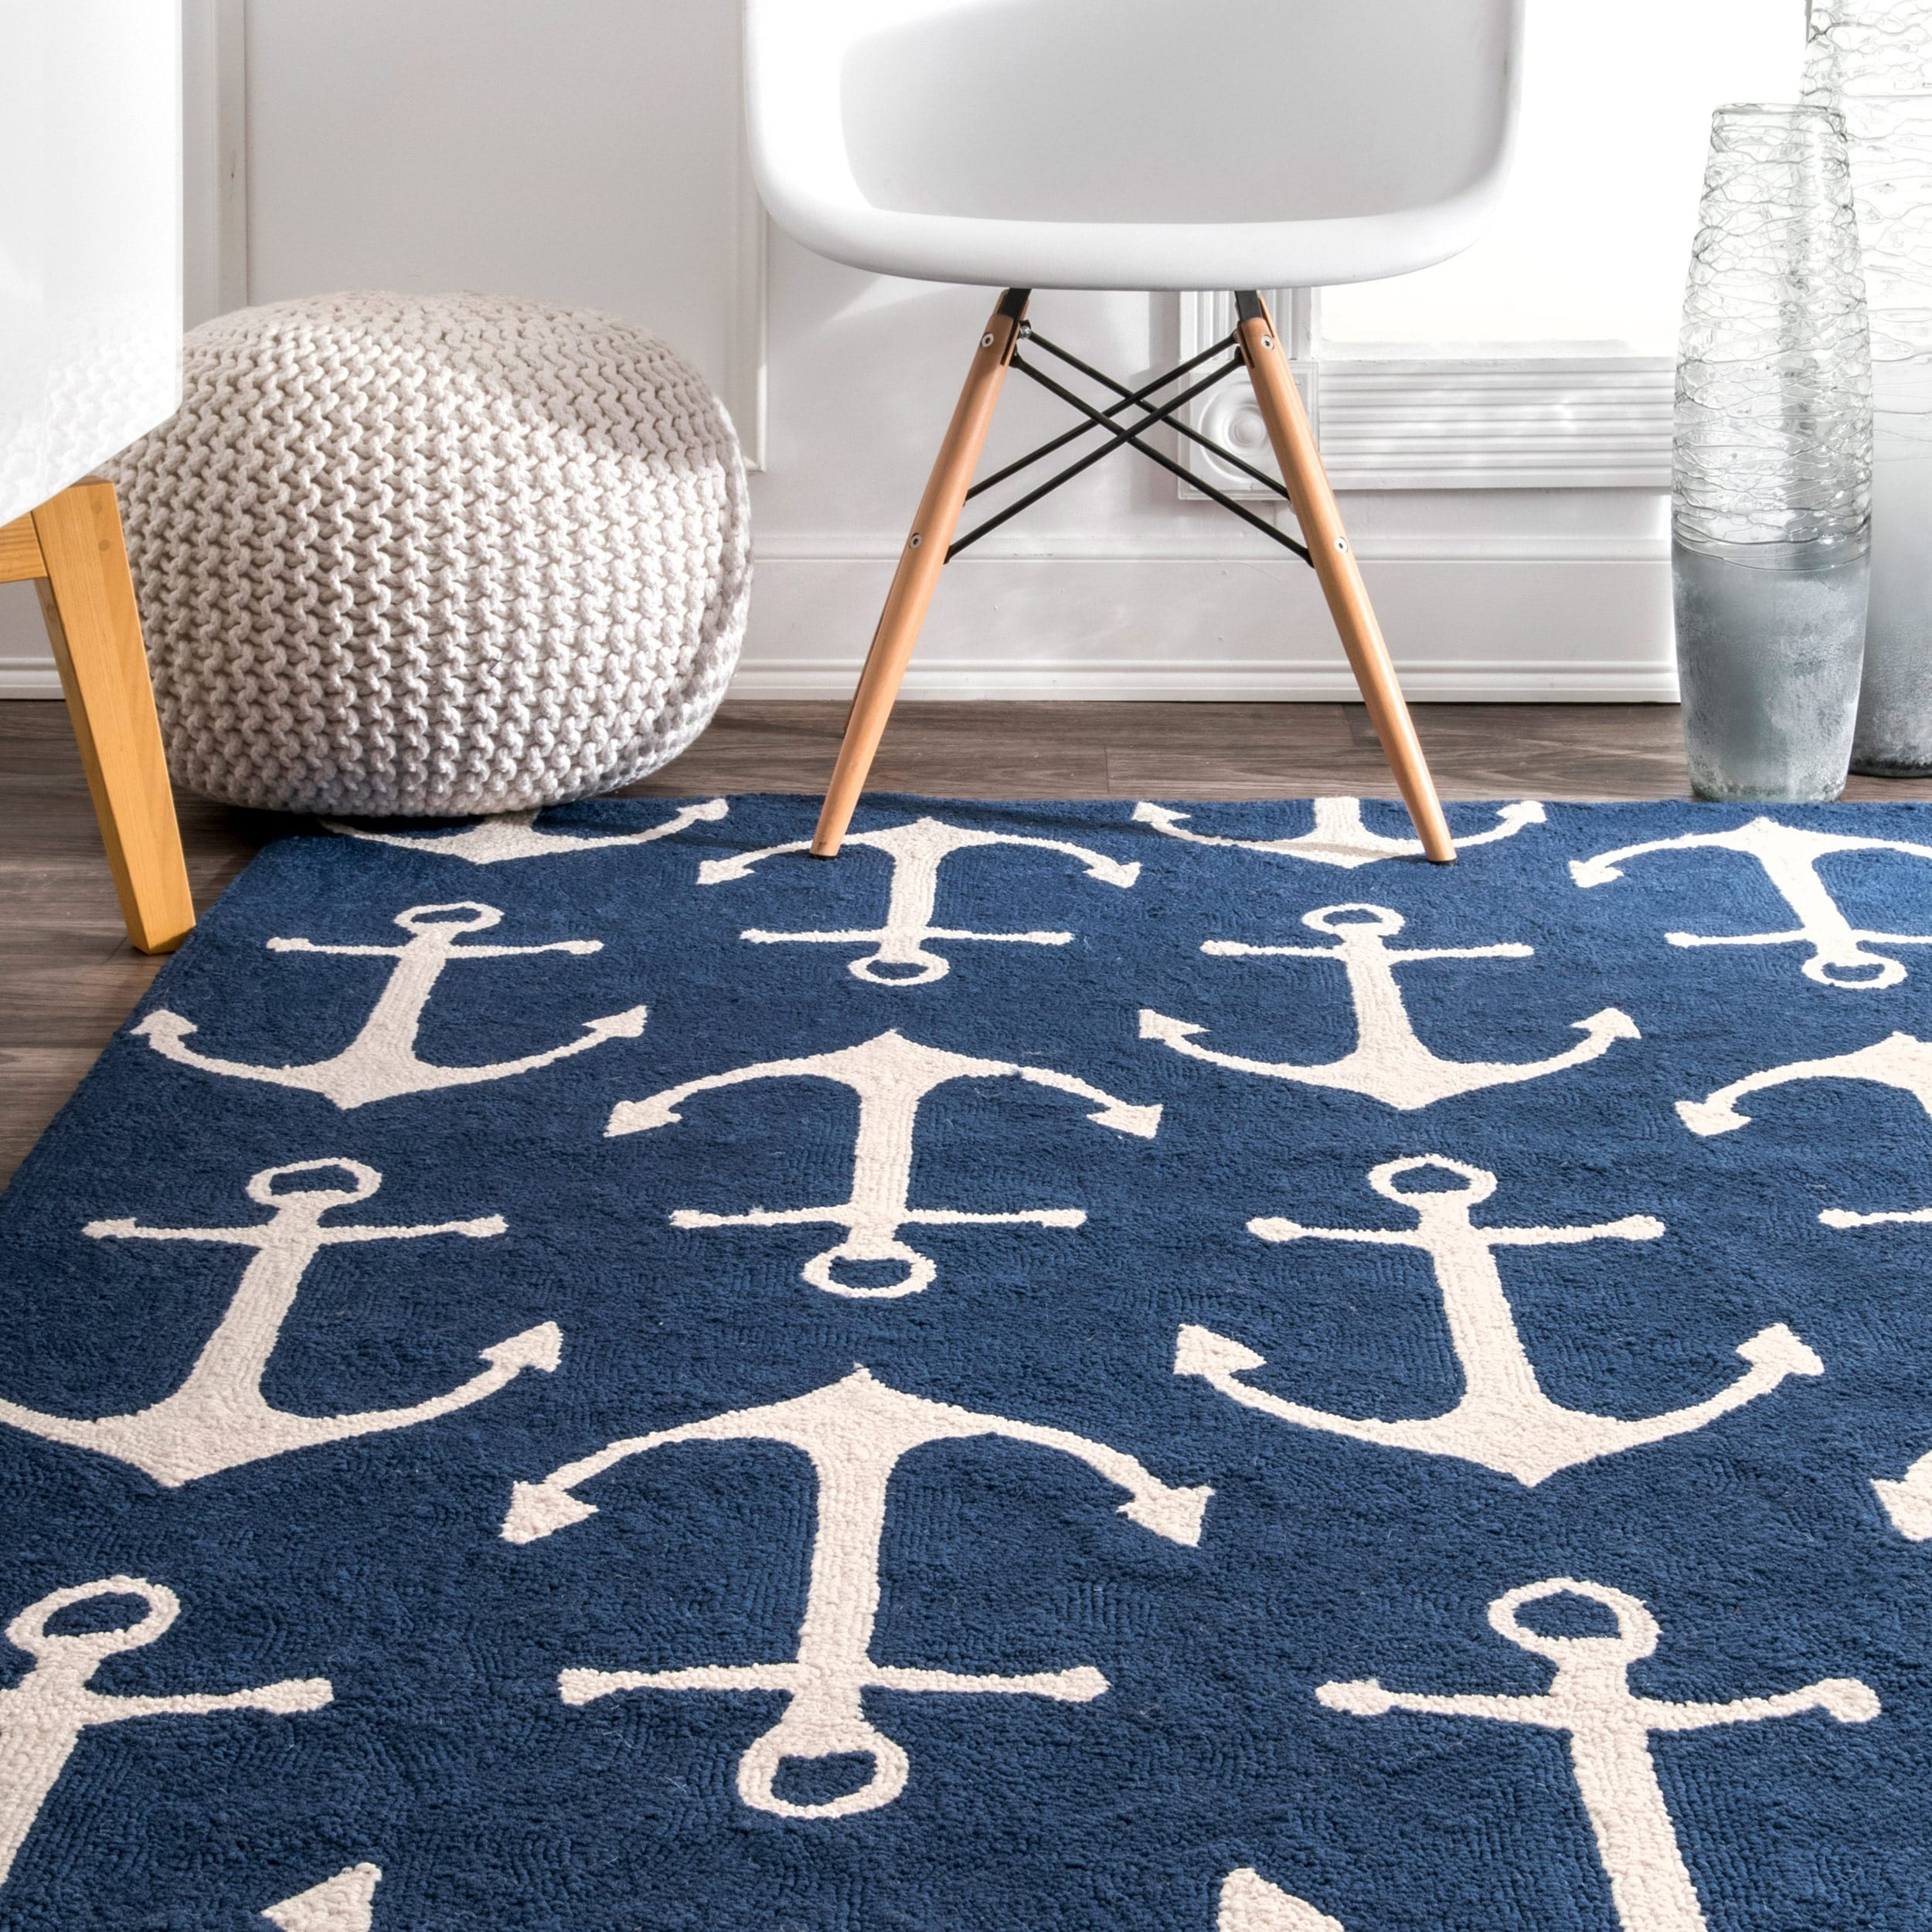 nautical rugs nuloom indoor/ outdoor novelty nautical anchors rug - 5u0027 x 8u0027 - free JOWTBYH